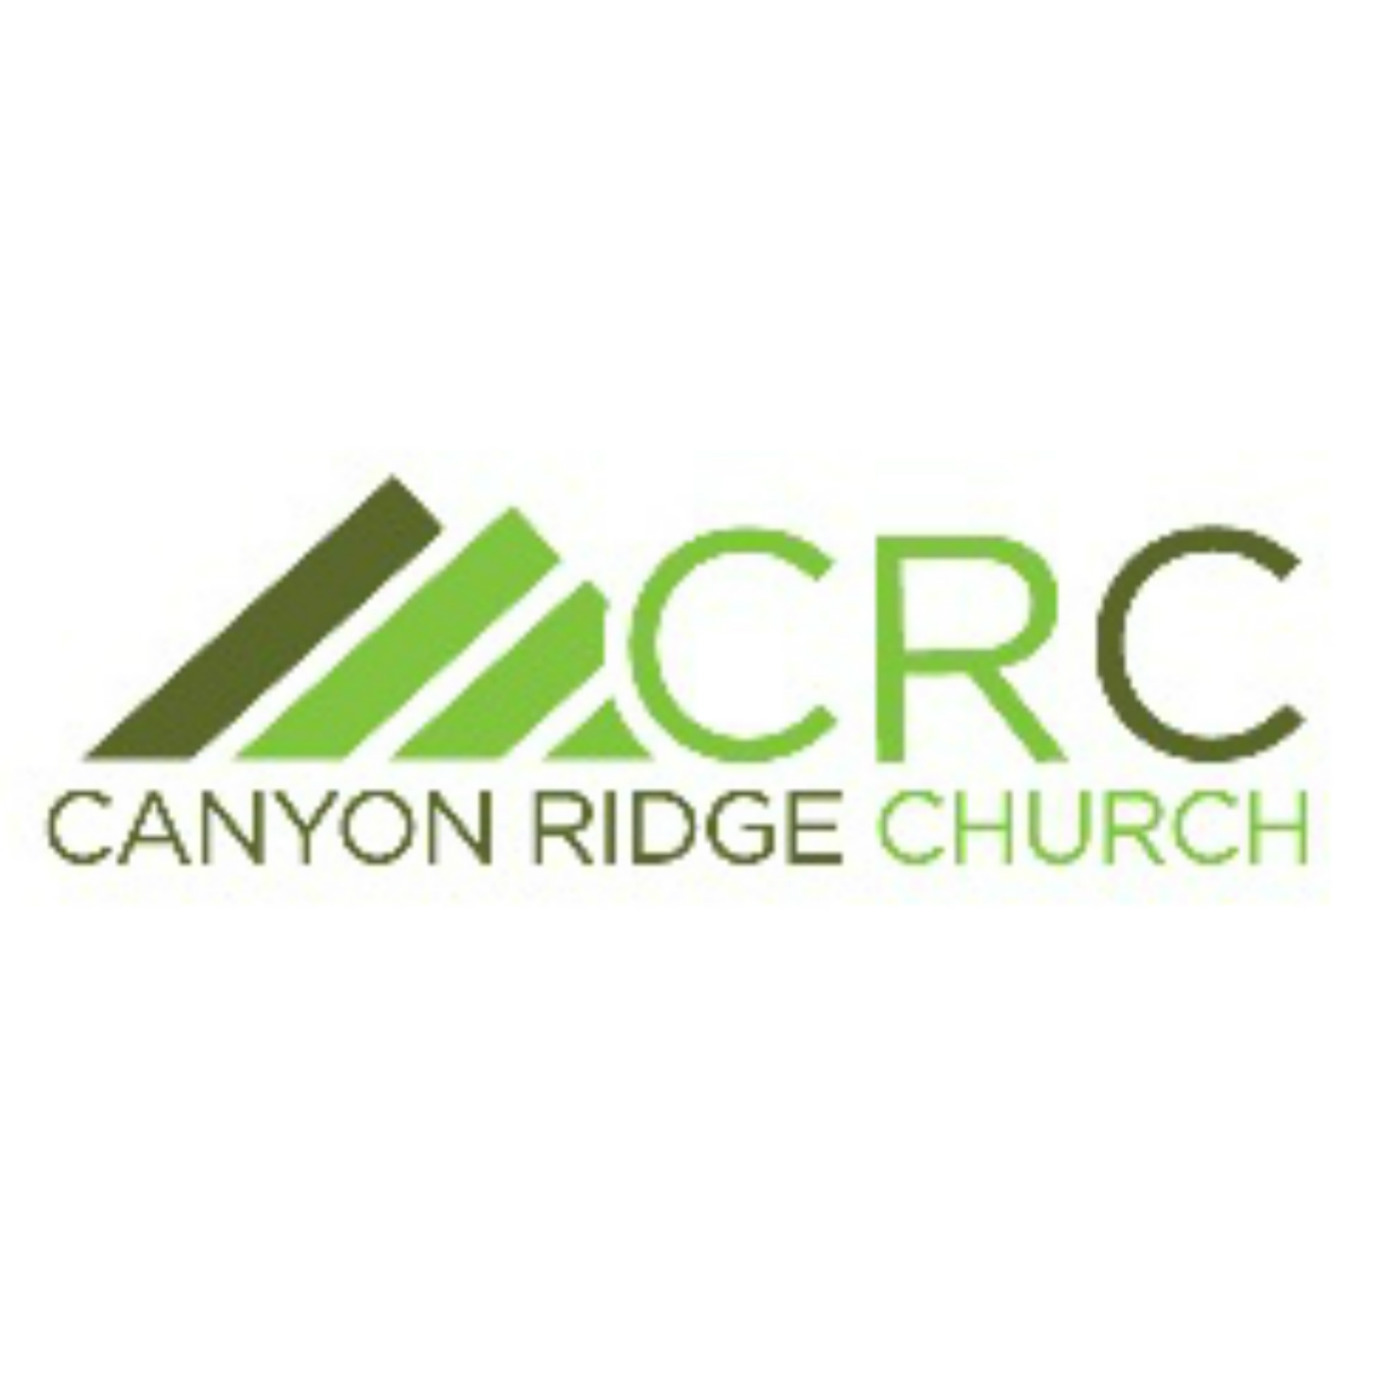 Canyon Ridge Church